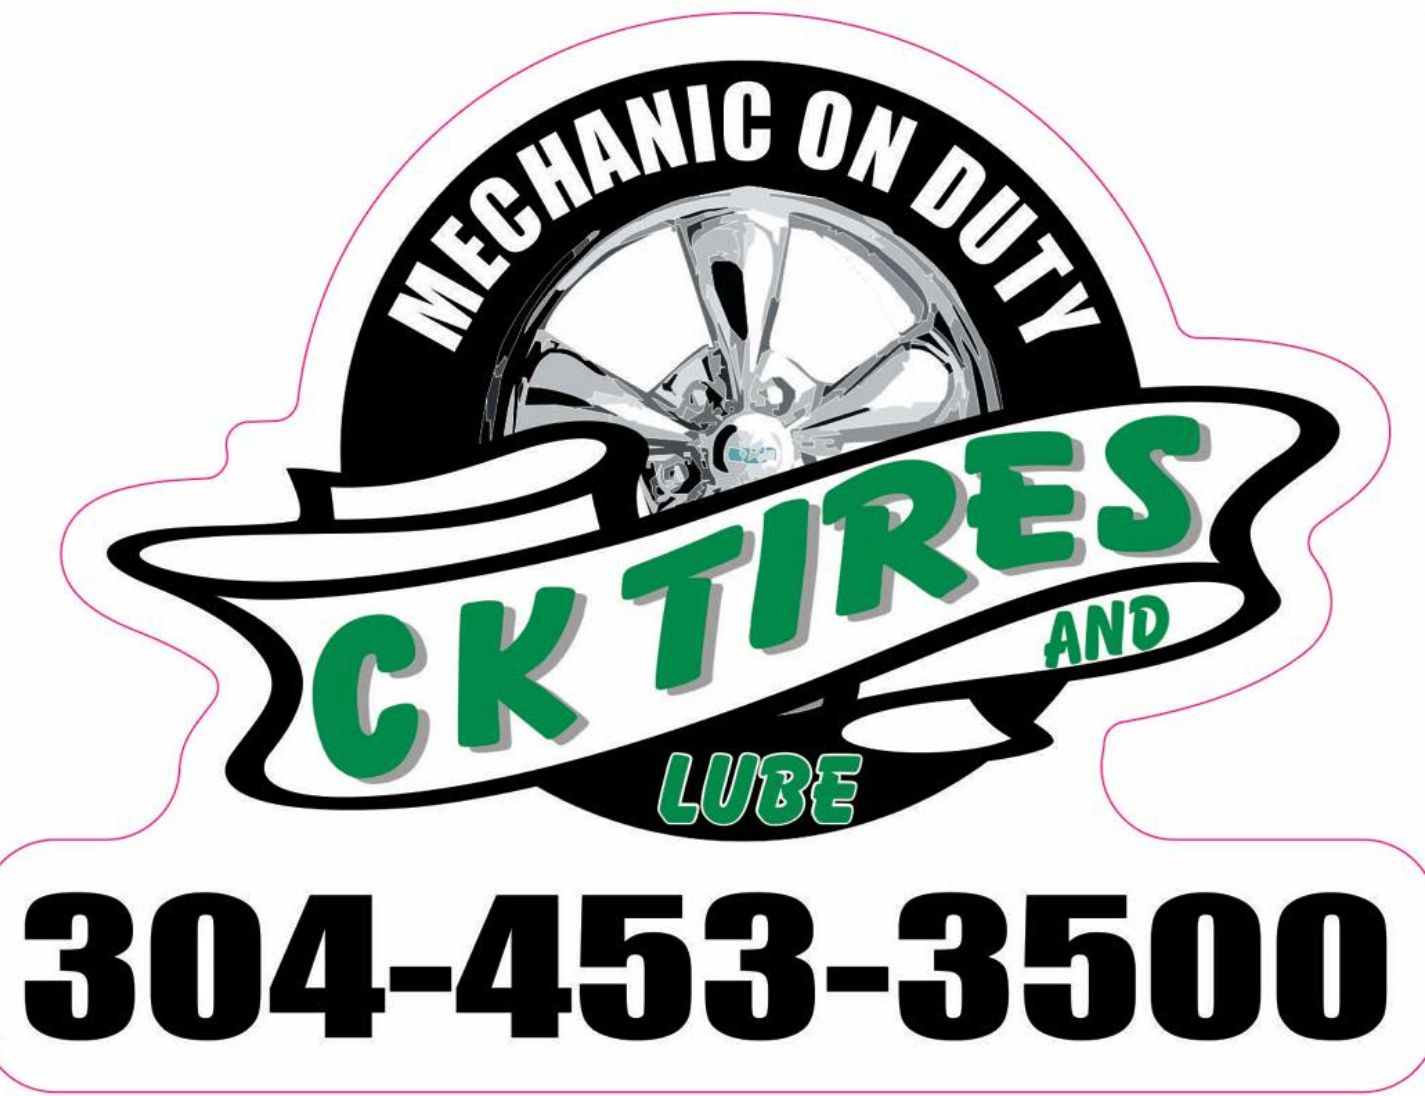 C K Tires & Lube | Best Place For Tires In The TriState 304-453-3500 Fax 304-908-1606